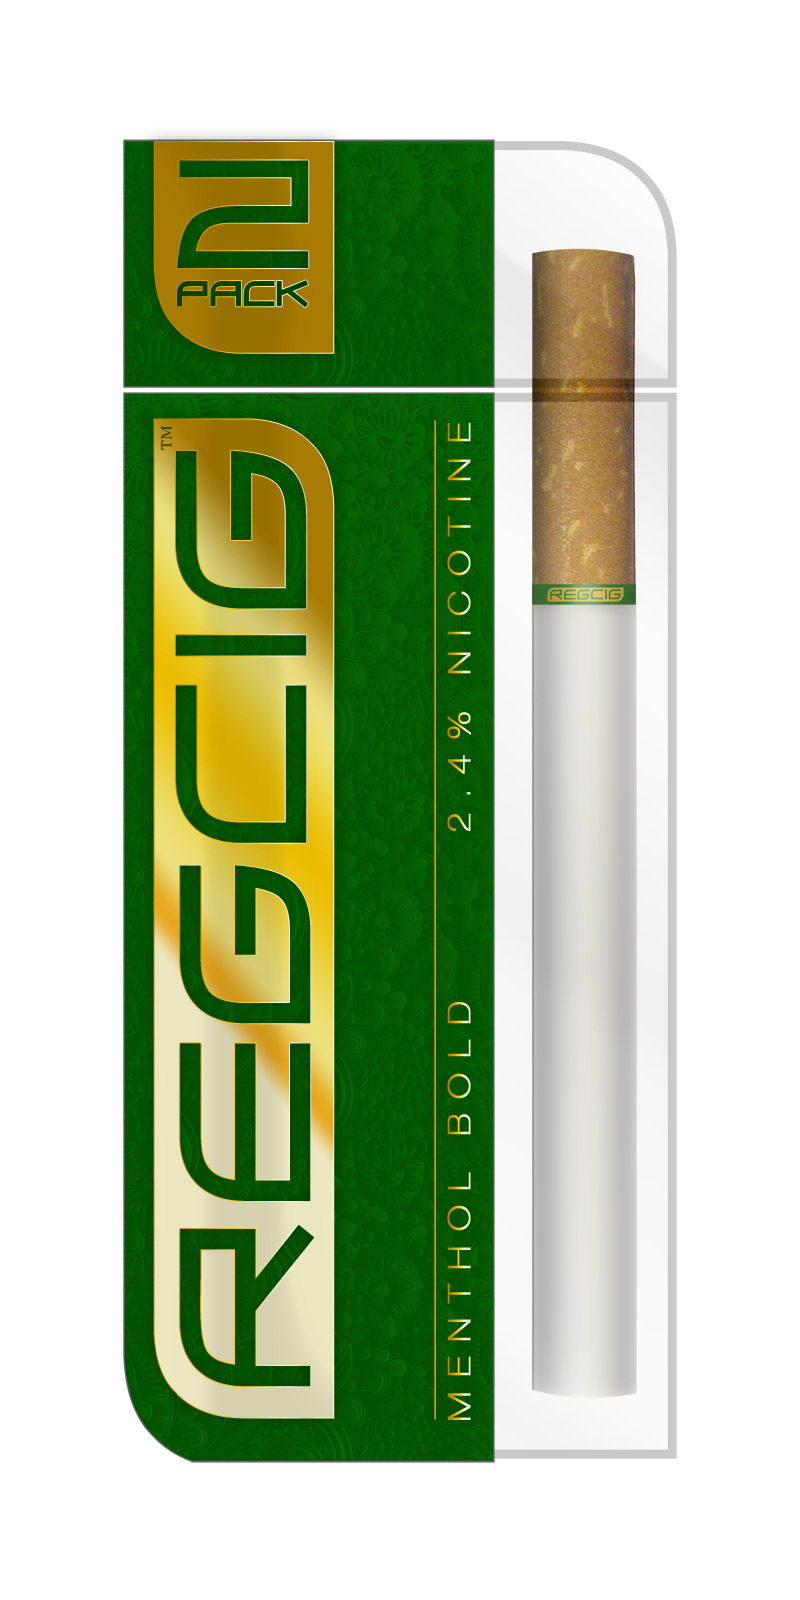 Regcig Branding and packaging design